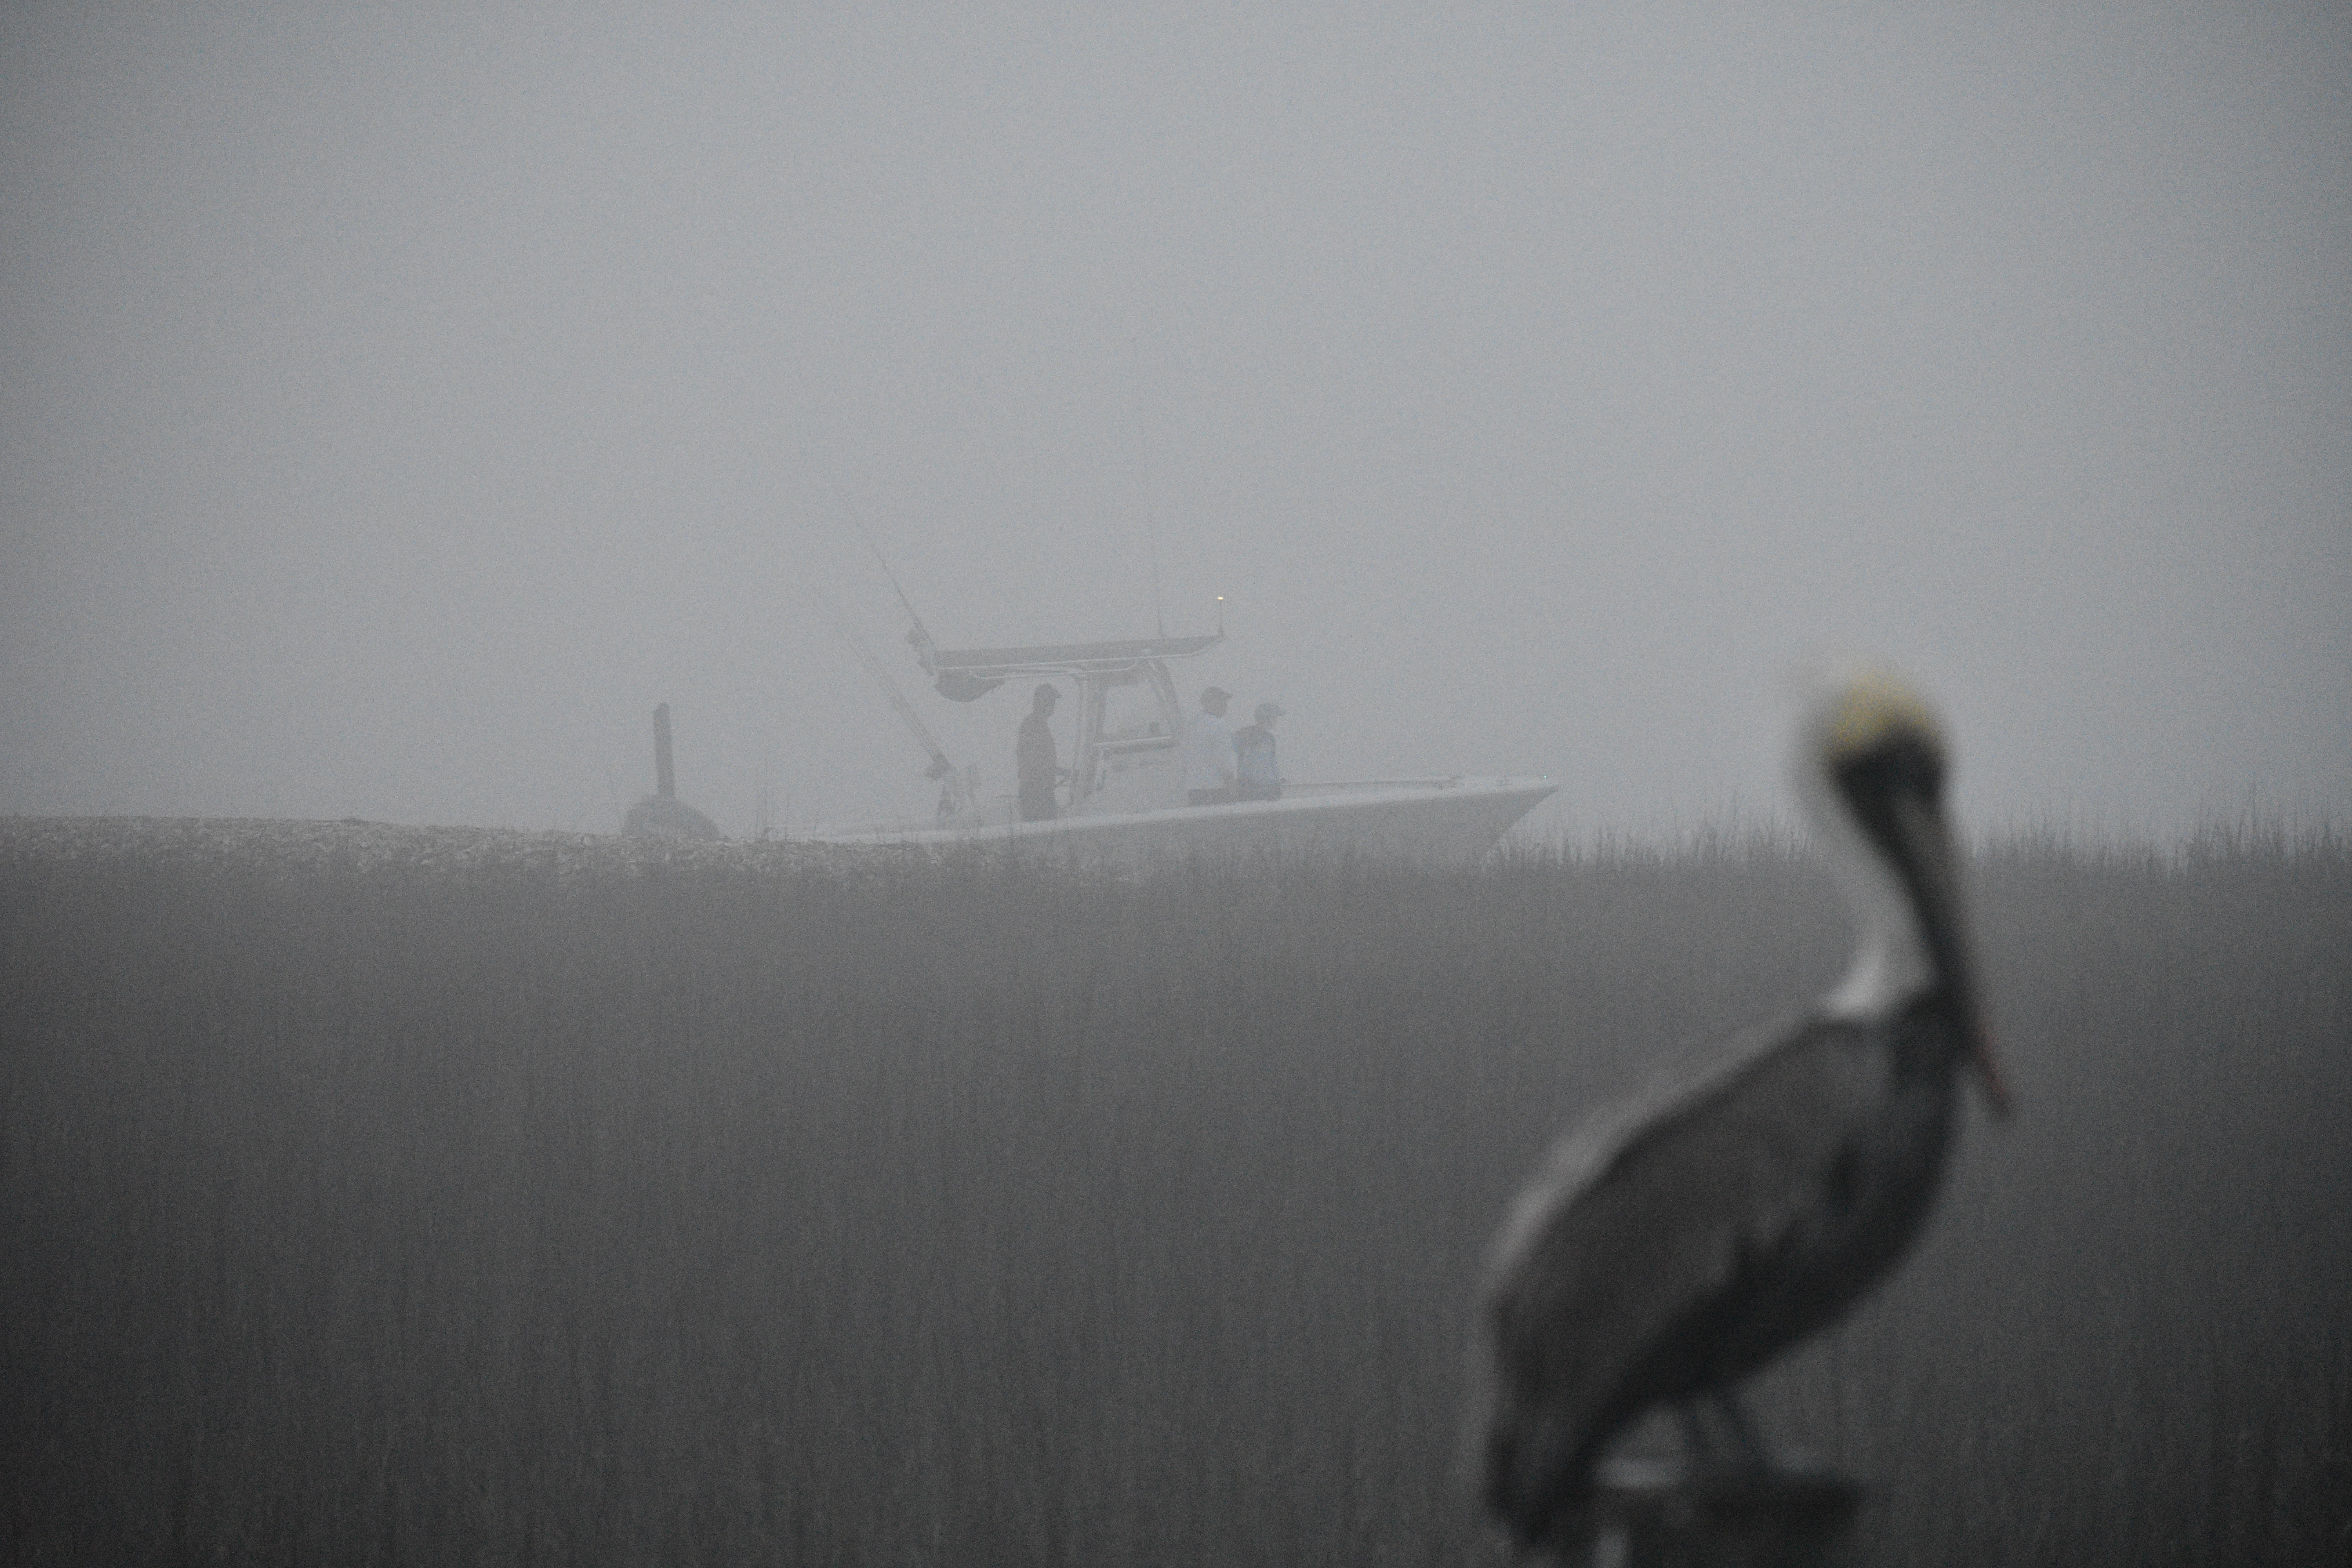 white and gray bird standing on pole near white motorboat